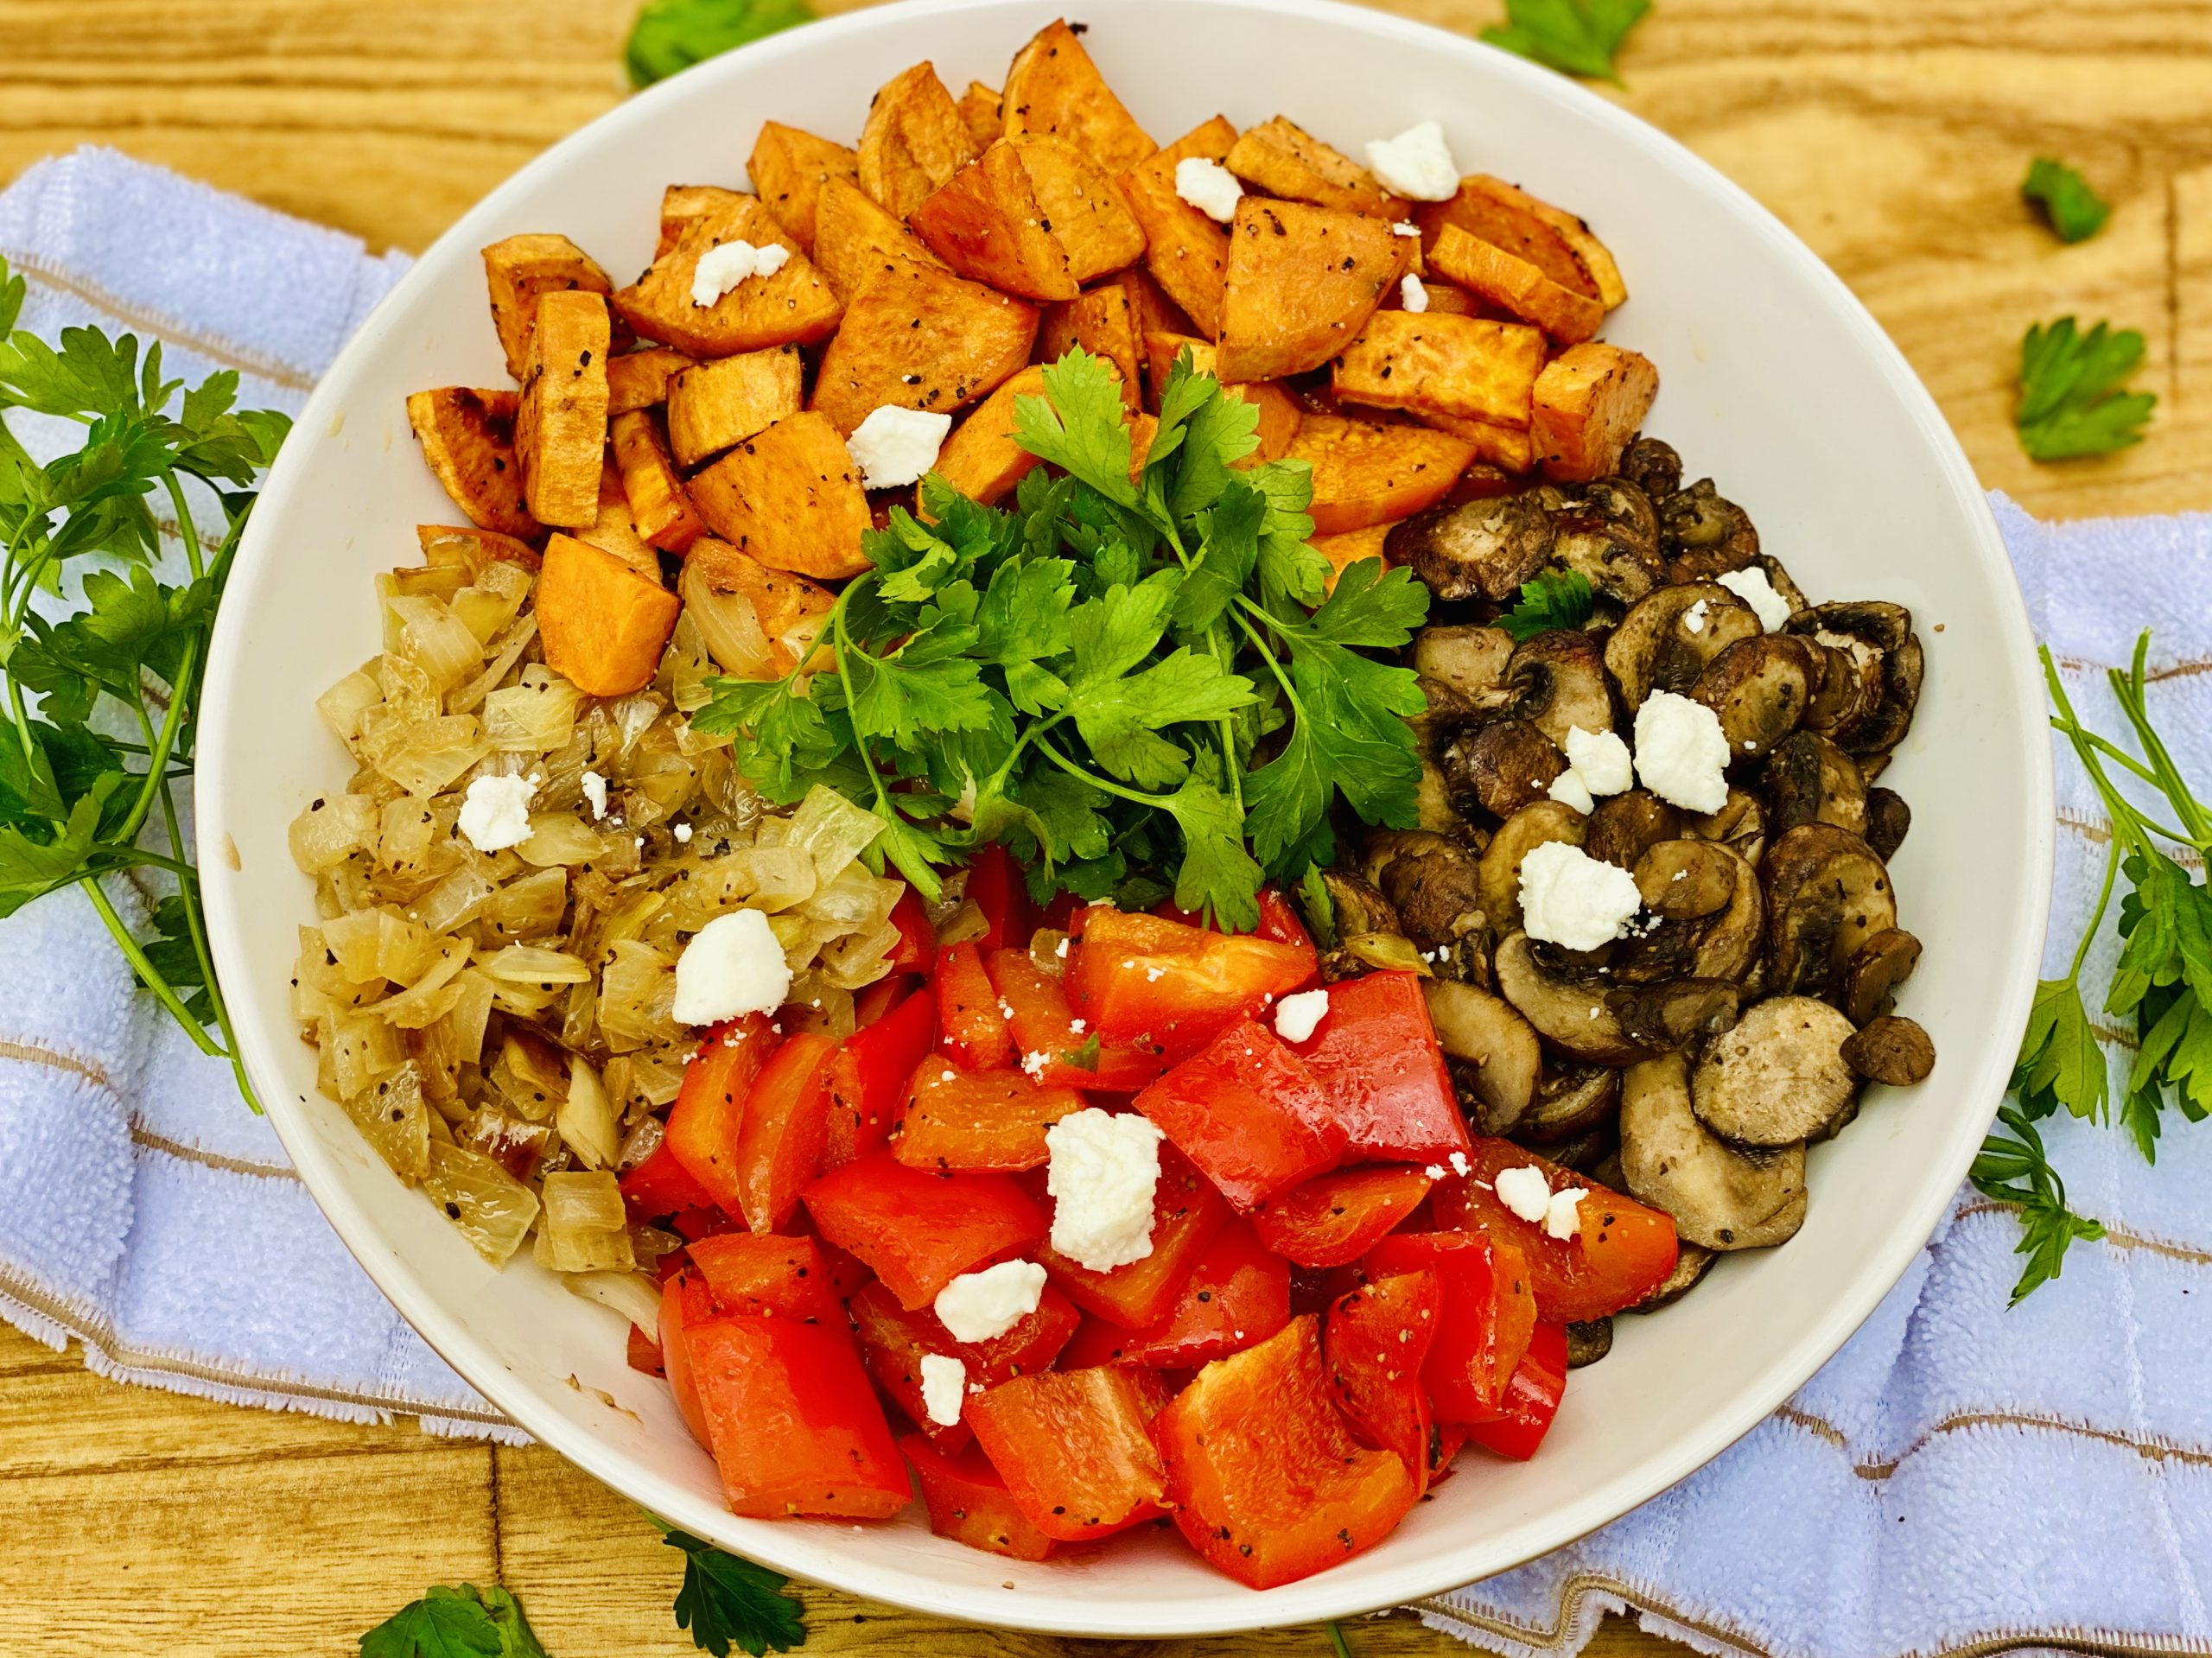 red peppers, sweet potatoes, mushrooms, and onions in white bowl sitting on top of a white towel